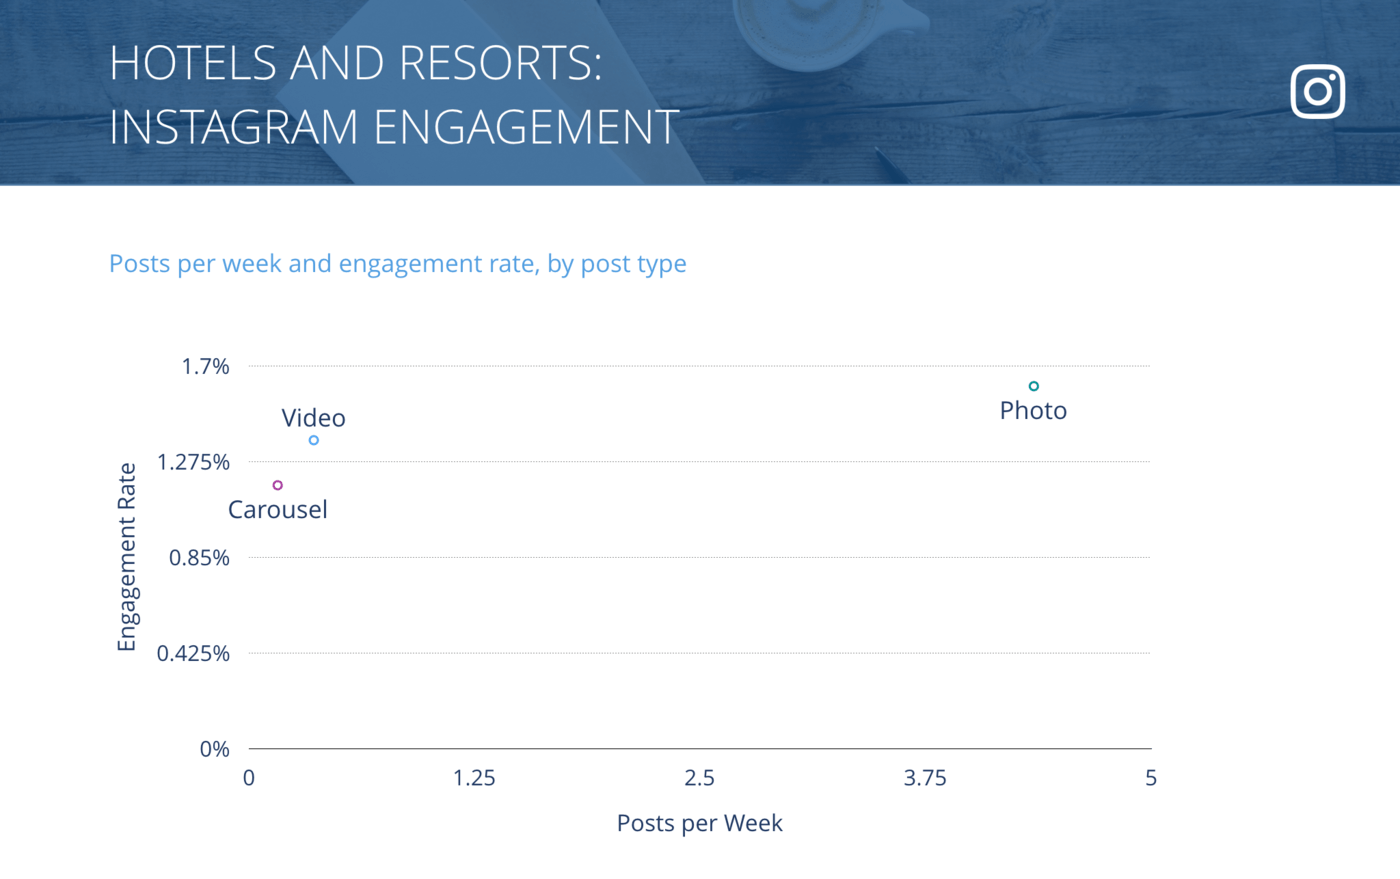 slide for Instagram Posts per Week vs. Engagement Rate per Post, Hotels & Resorts